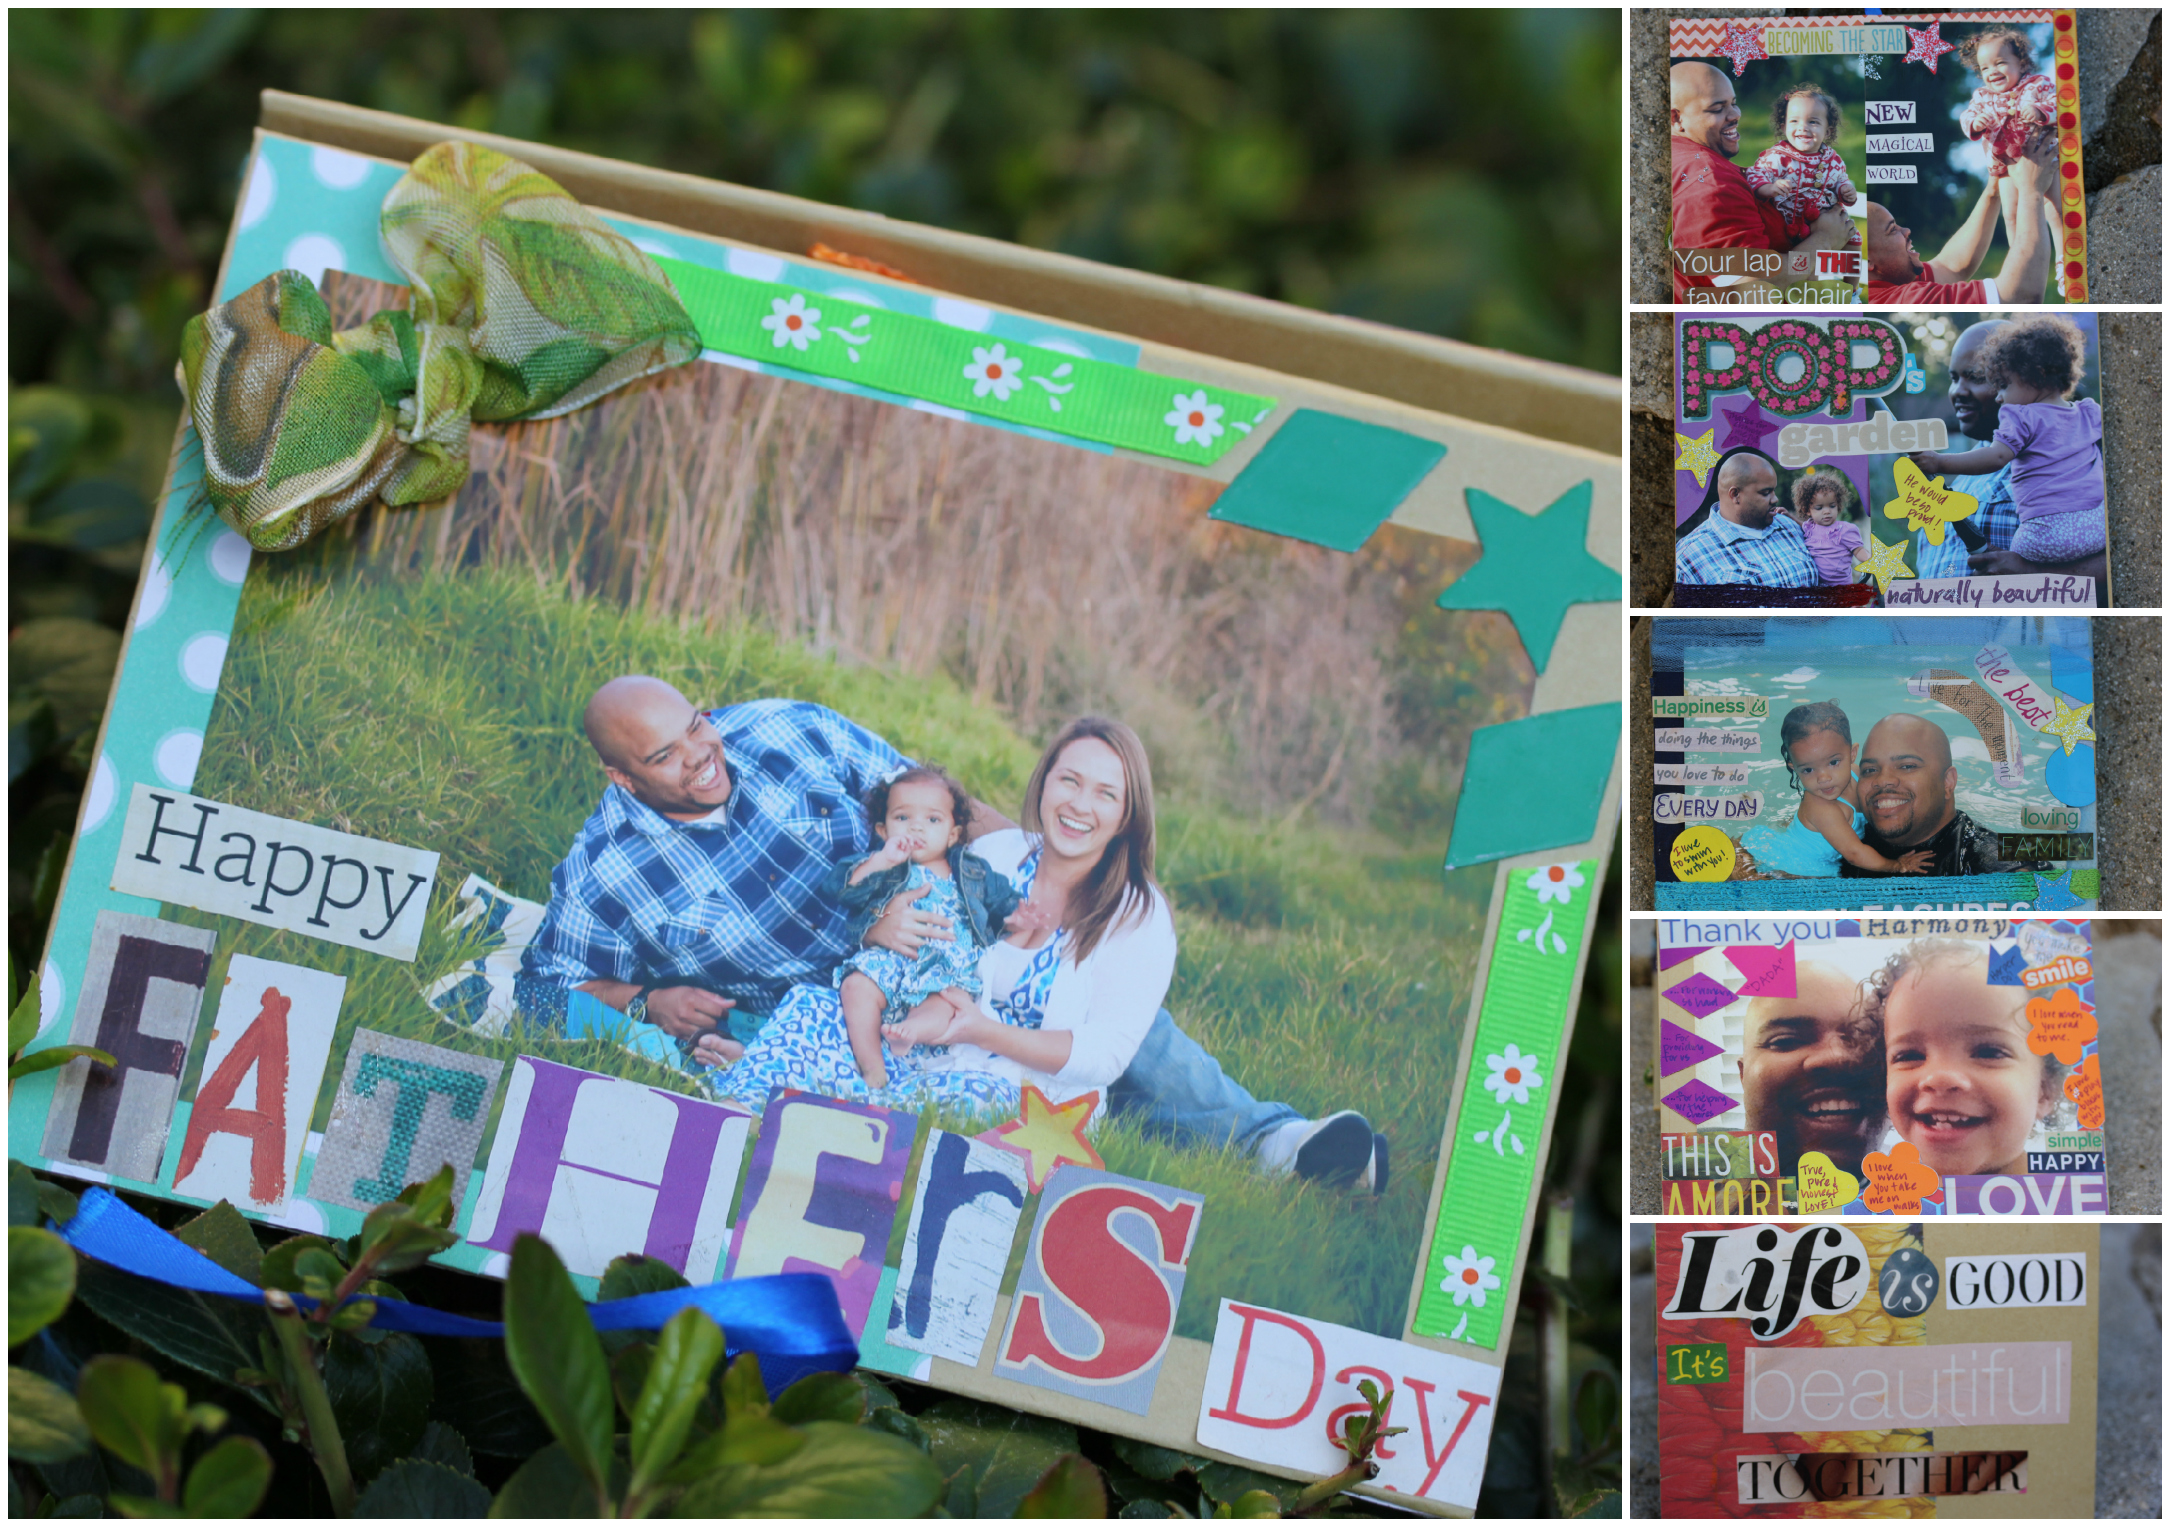 How to make scrapbook using recycled materials - This Project Was My Favorite Of All Three Because The Materials Were So Diverse They Included Recycled And Salvaged Ribbon Fabric Squares Allergen Free